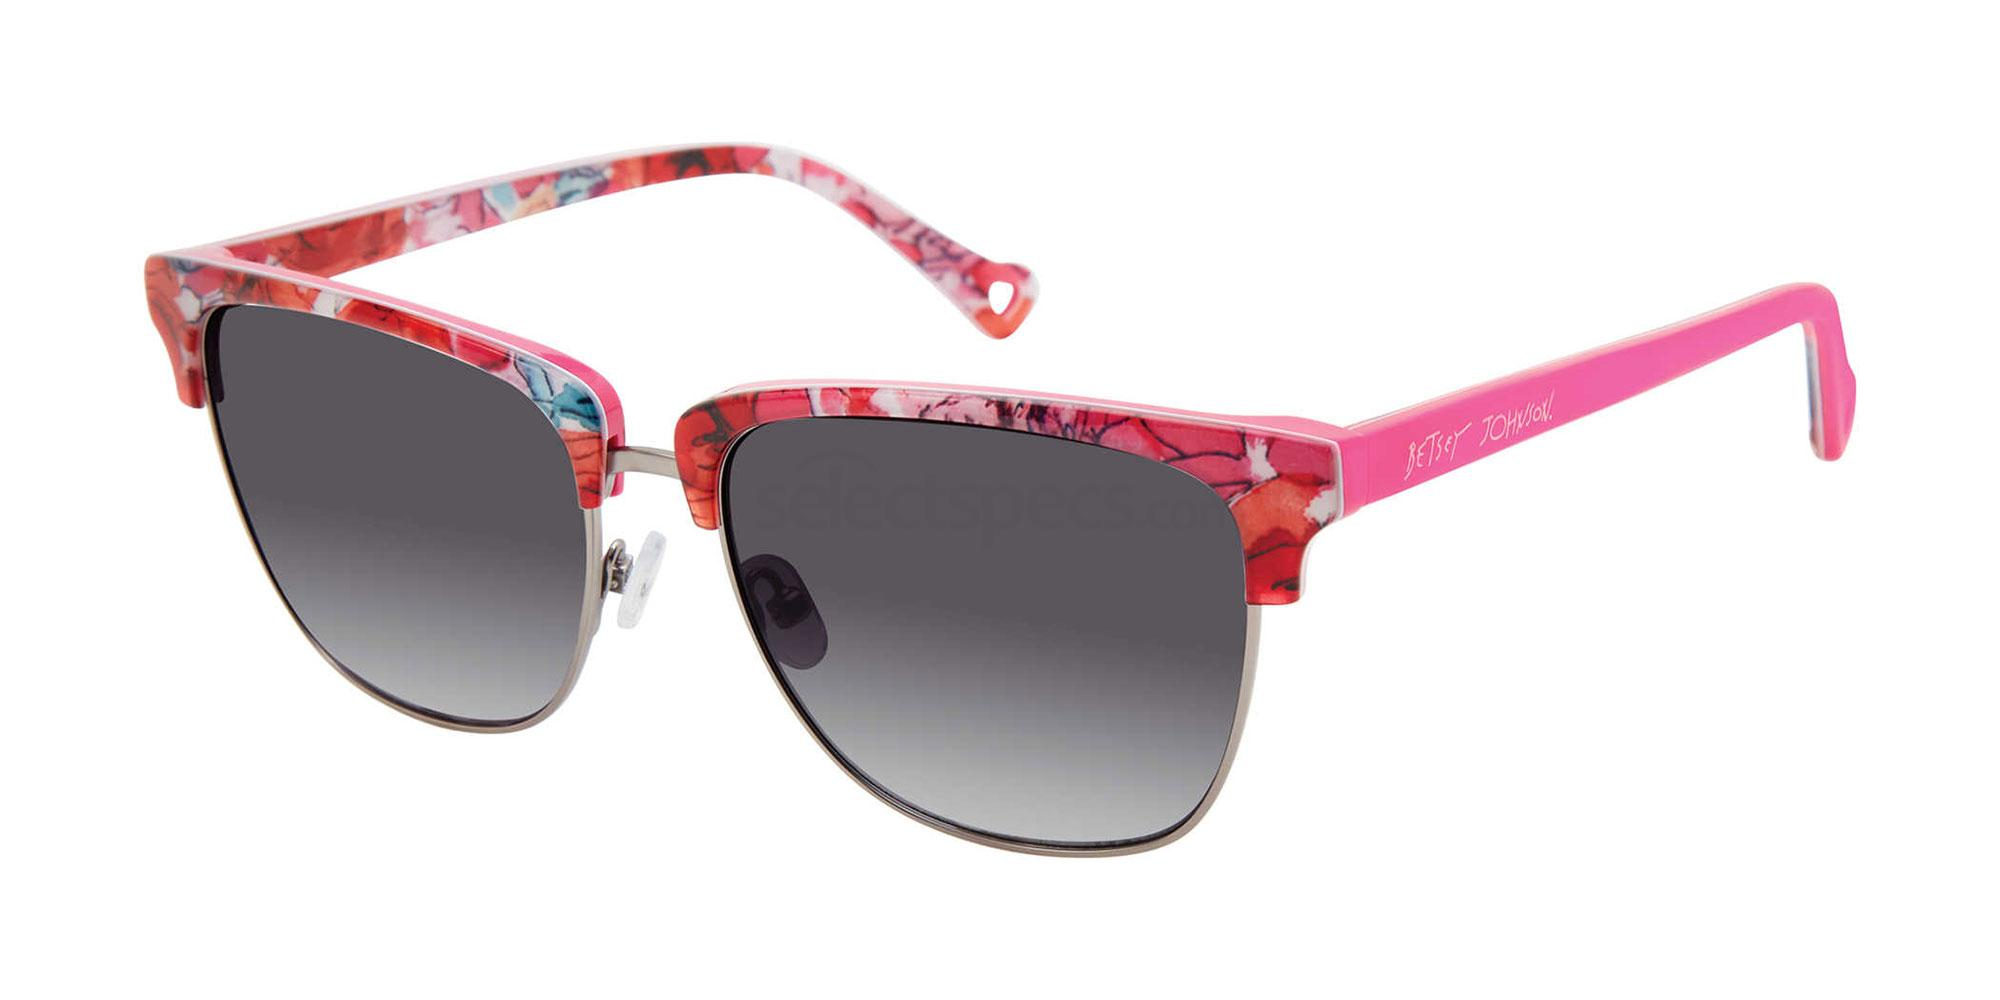 01 In The Club Sunglasses, Betsey Johnson